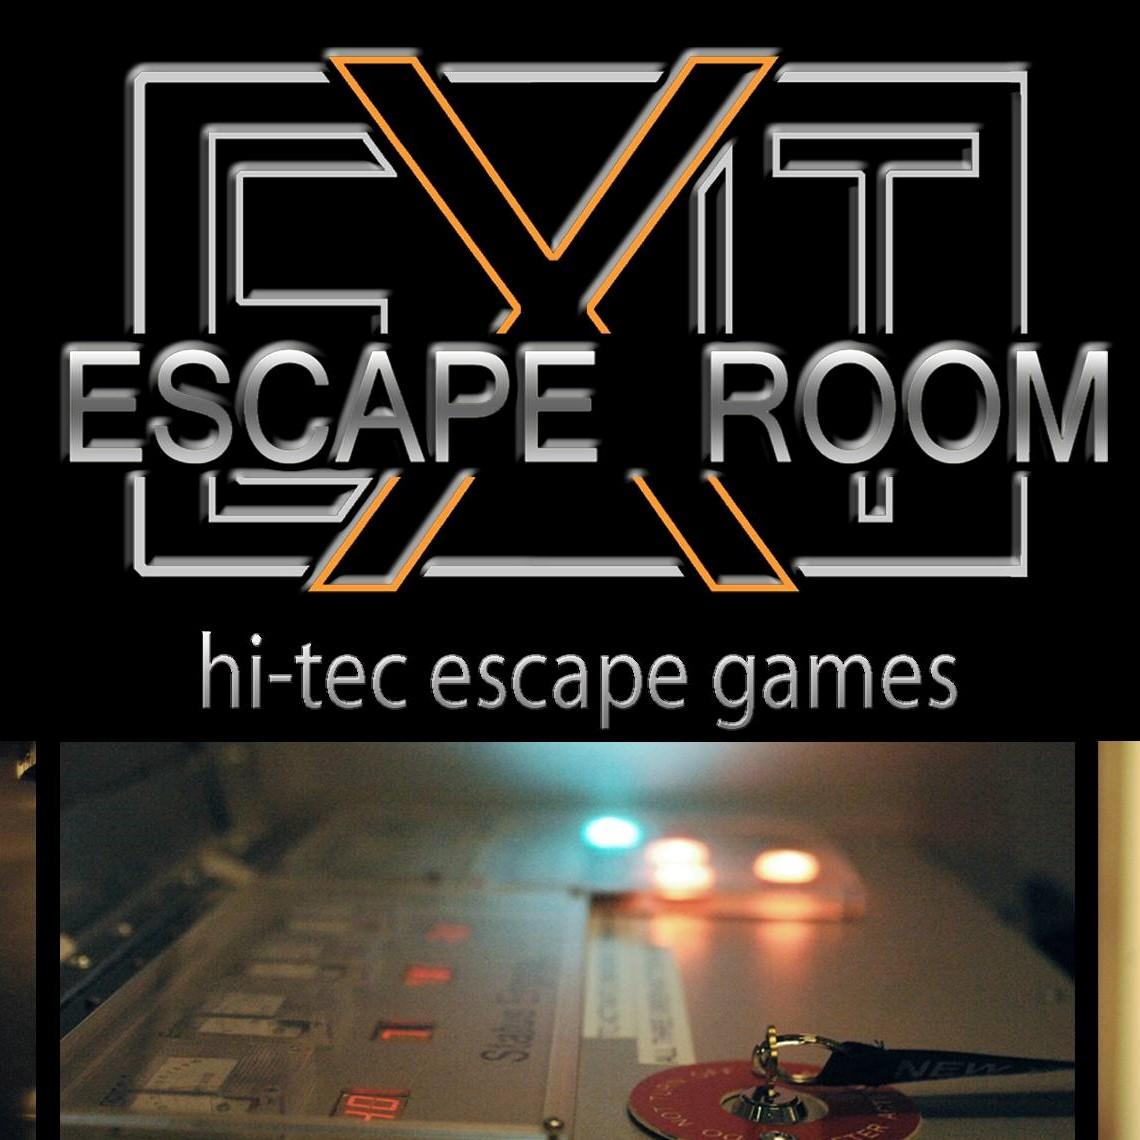 Exit Escape Room NYC